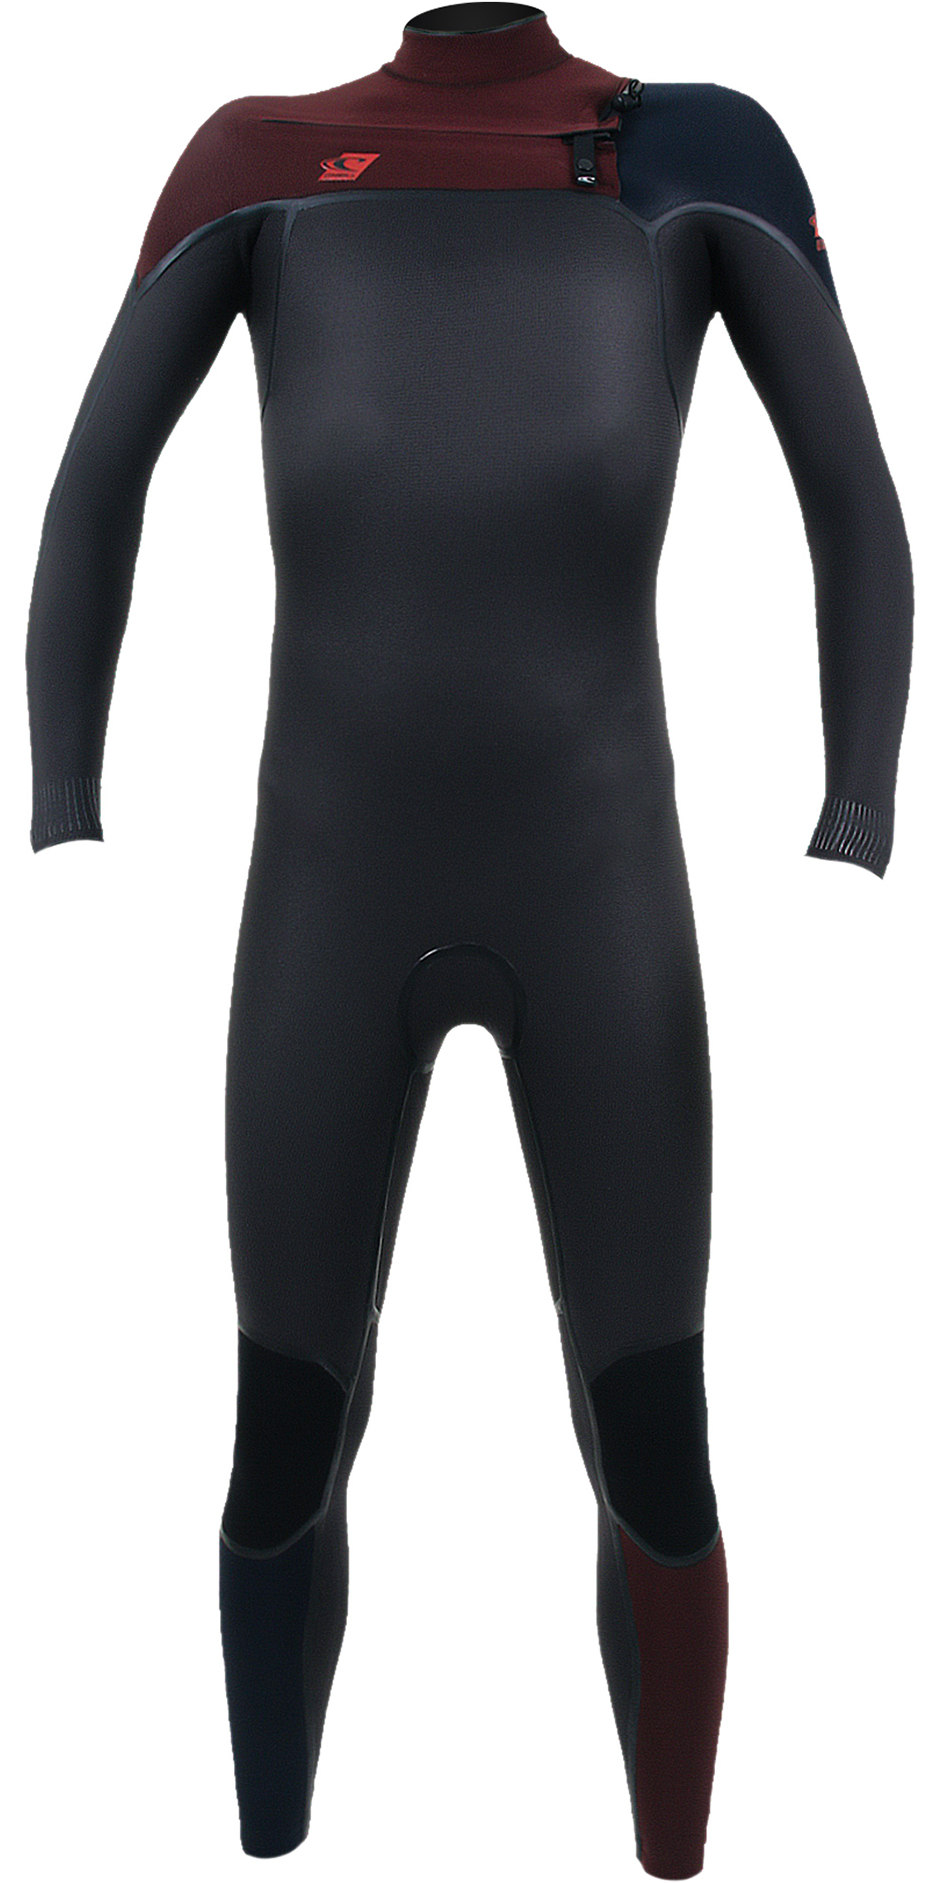 2020 O'Neill Youth Psycho One 5/4mm Chest Zip Wetsuit Raven / Widow / Abyss 4995